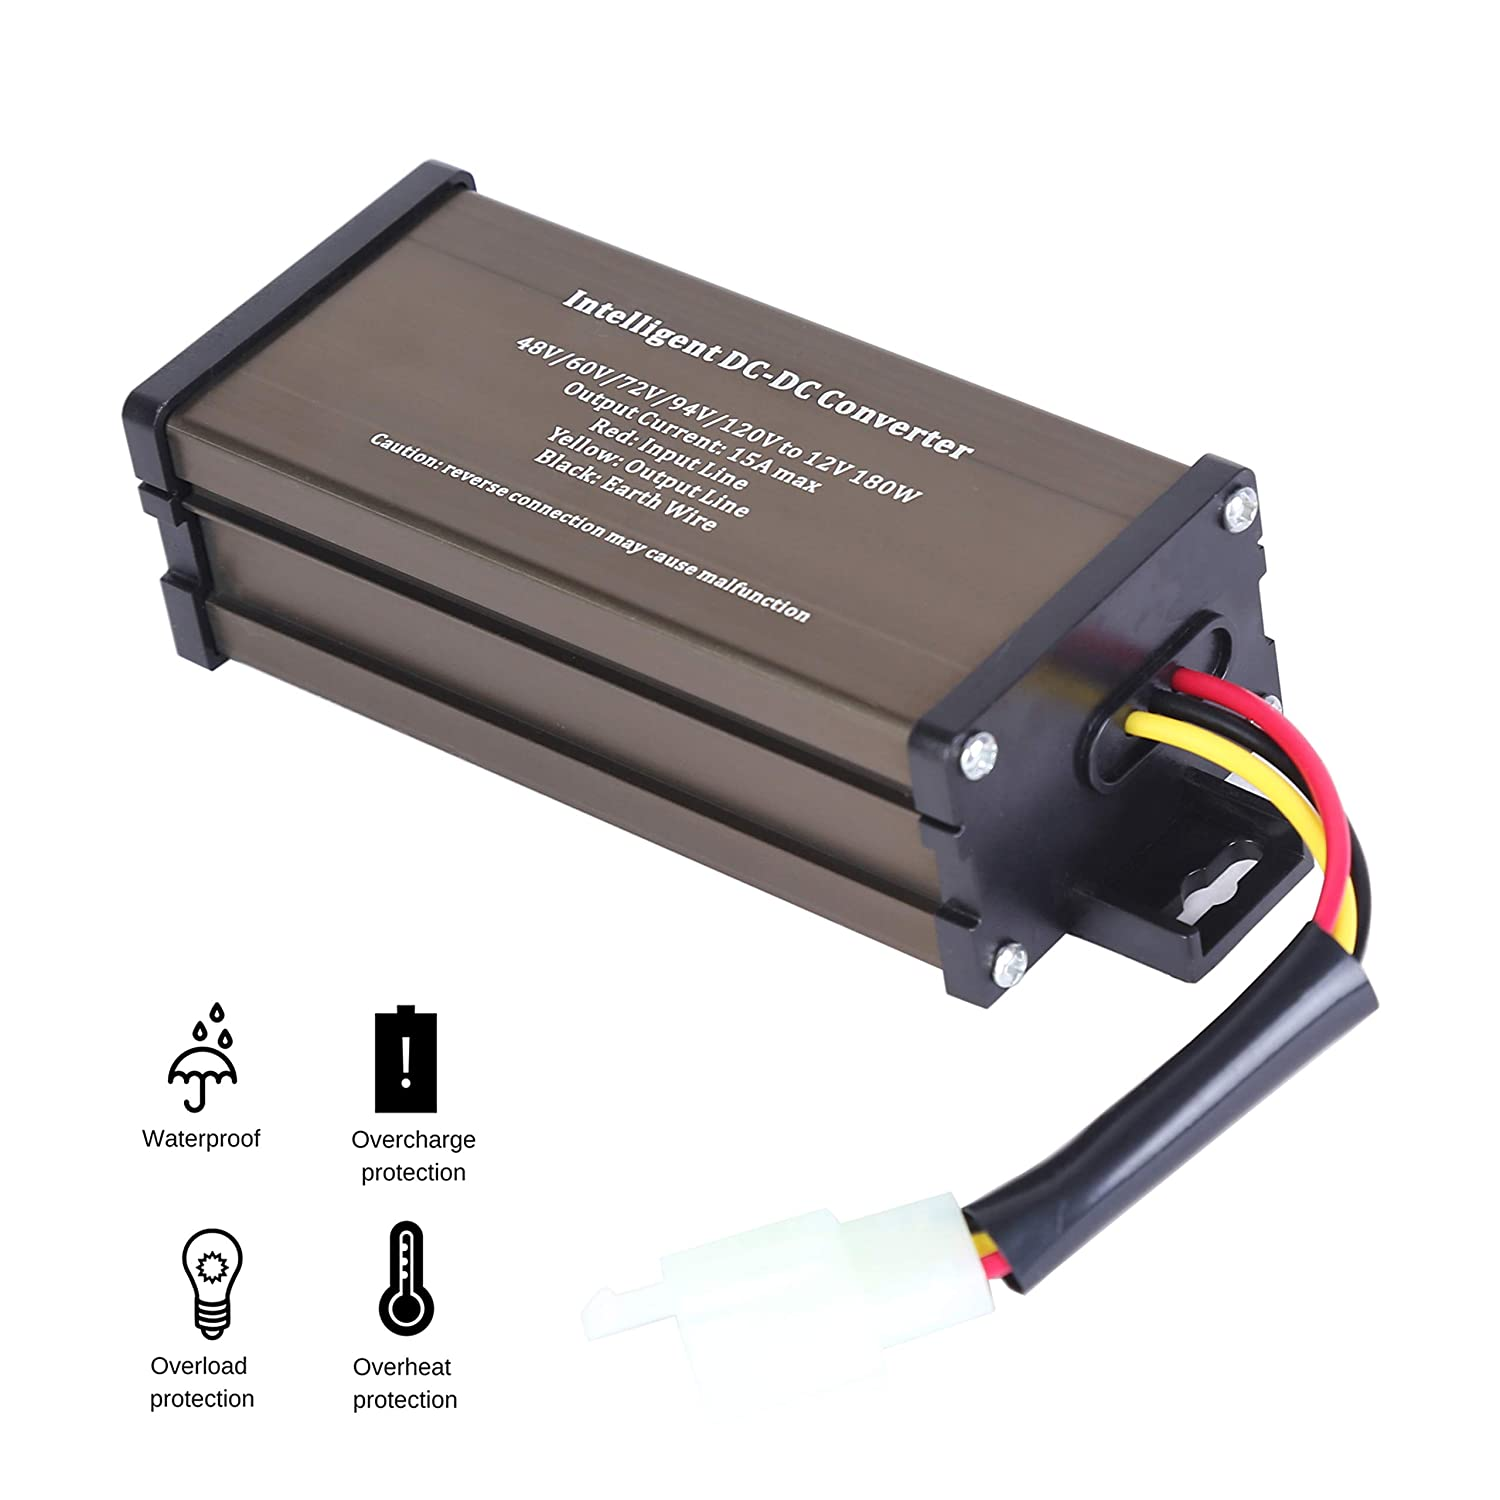 amazon com pro chaser dc dc 120v 108v 96v 84v 72v 60v 48v voltamazon com pro chaser dc dc 120v 108v 96v 84v 72v 60v 48v volt voltage to 12v step down voltage reducer regulator 180w 15a for scooters \u0026 bicycles golf